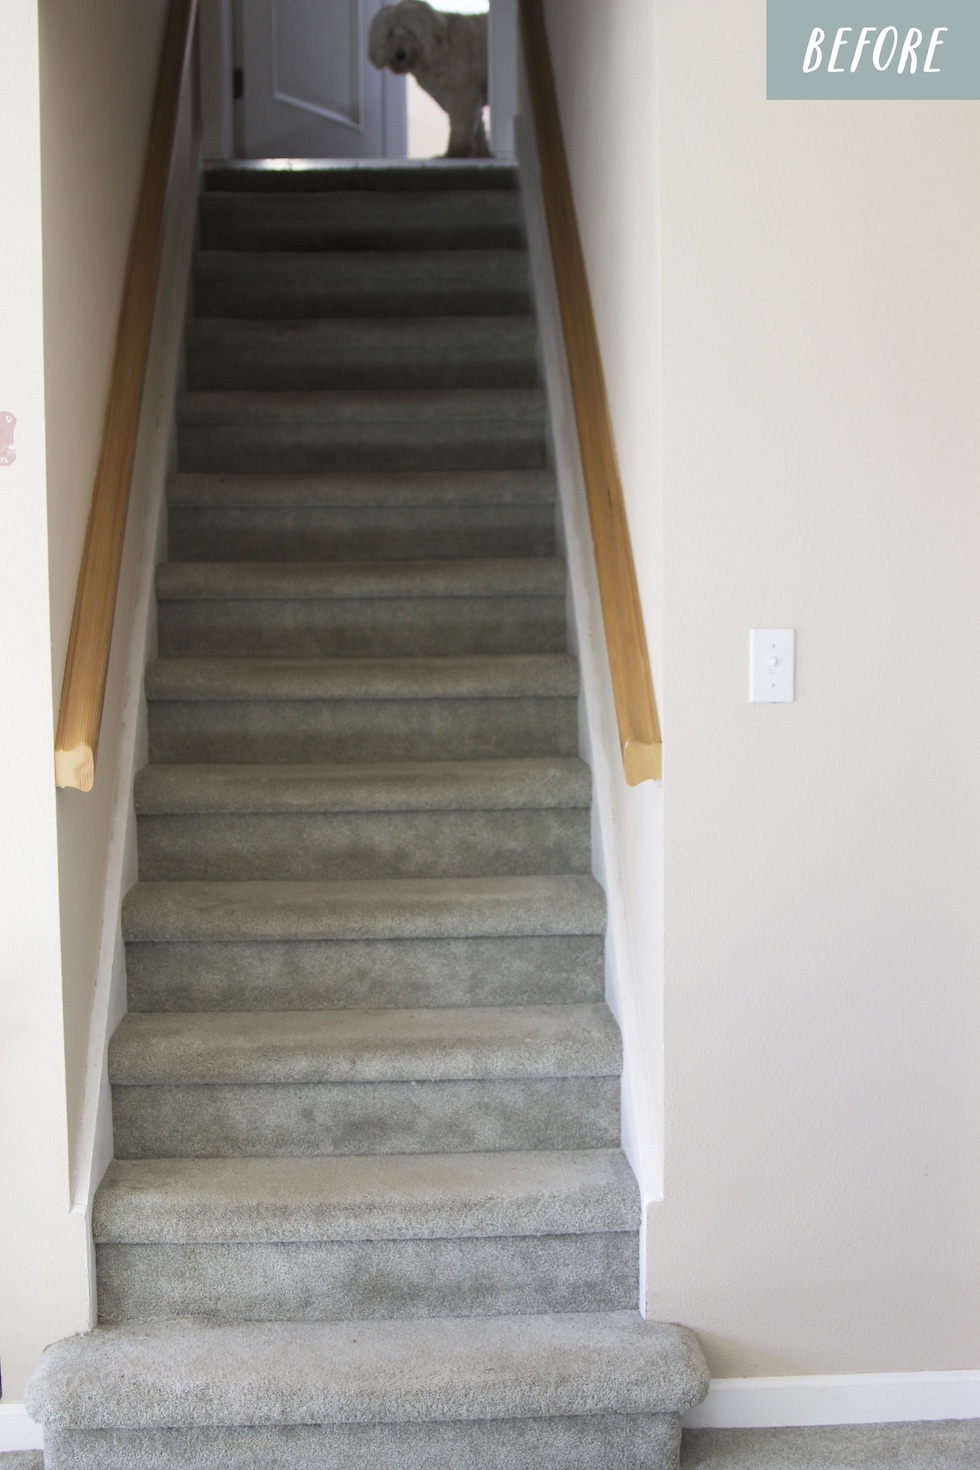 Paint the staircase (and ideas for stair runners!)